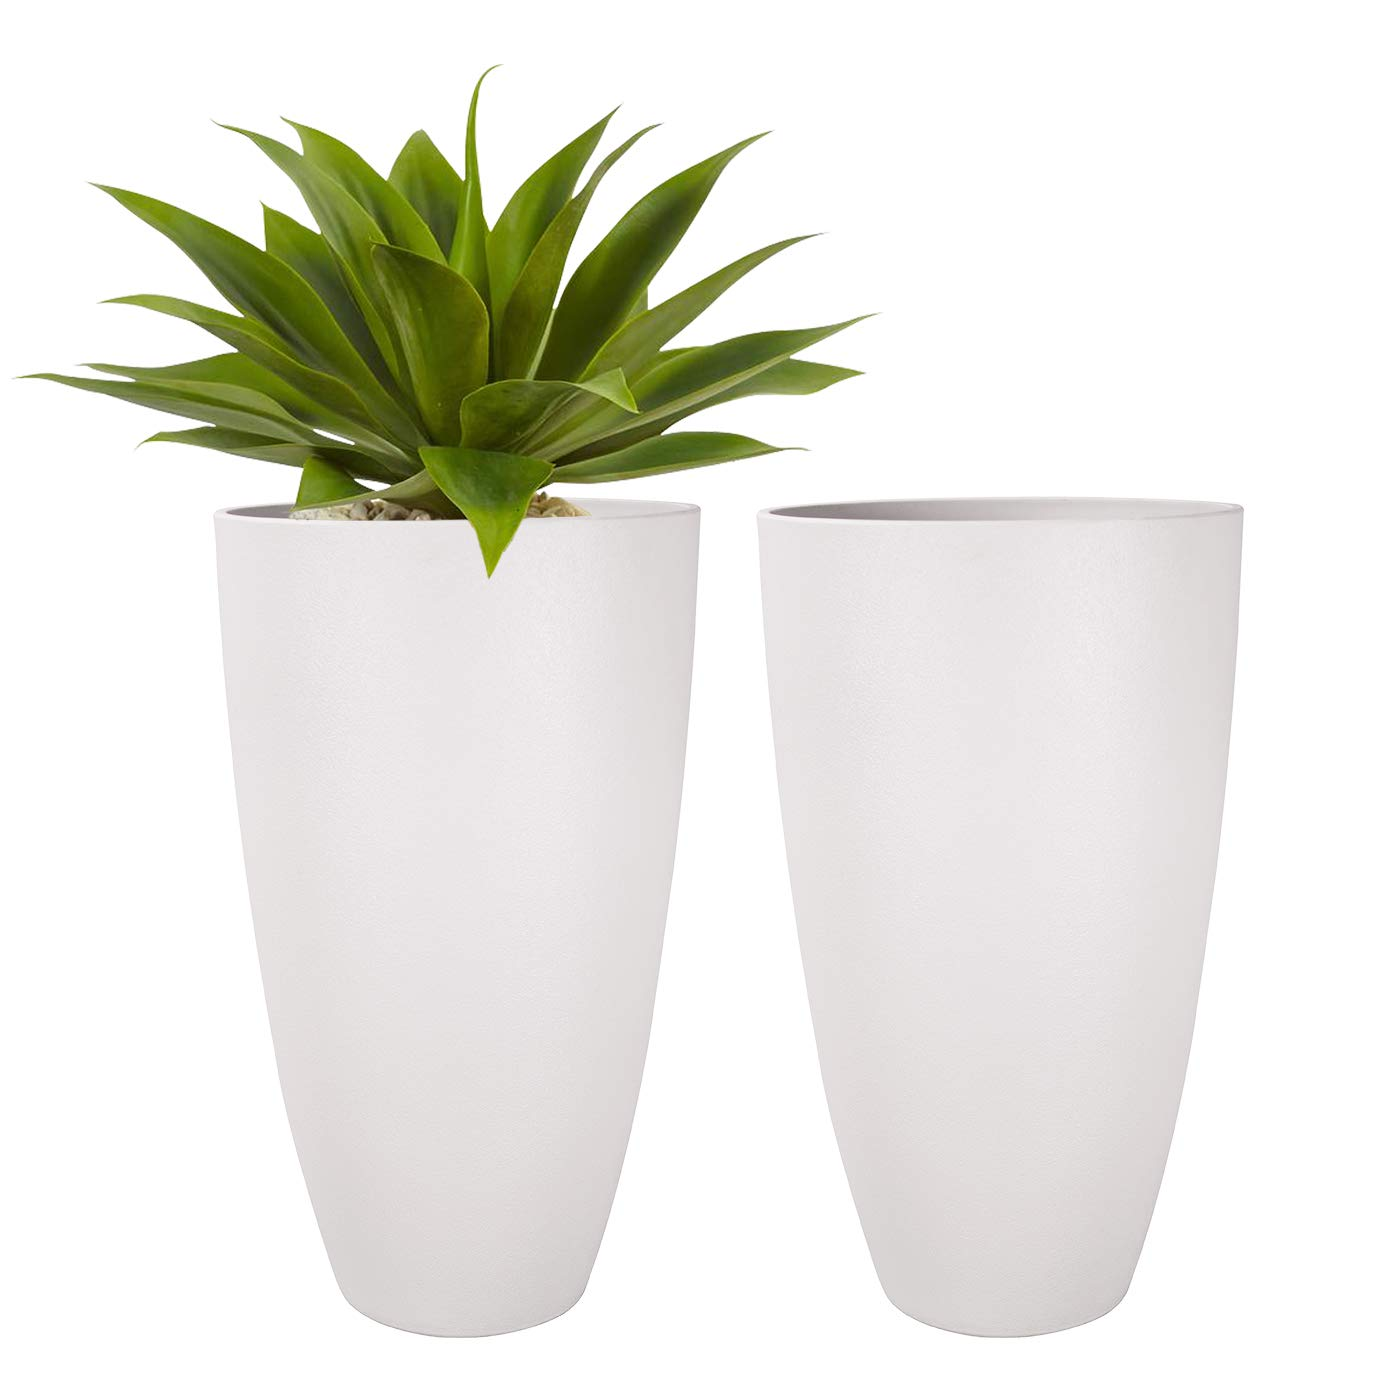 LA JOLIE MUSE Tall Planters Outdoor Indoor - Tree Planter 20 inch Modern White Flower Pots with Drainage Holes for Balcony Garden Patio Deck Resin Planters Pack 2